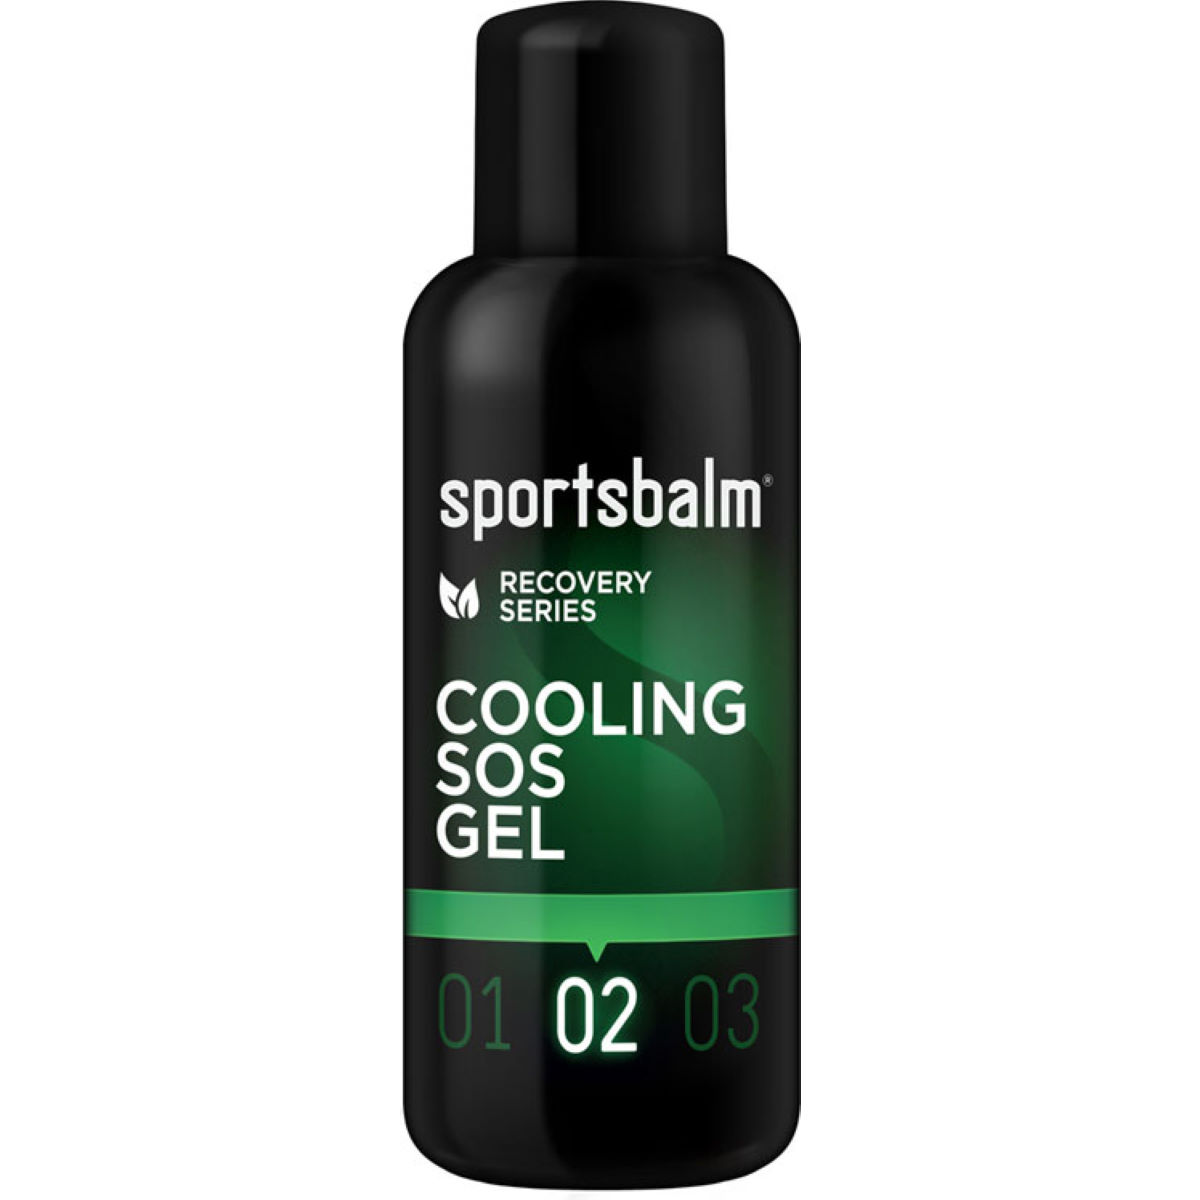 Sportsbalm Recovery Series Cooling SOS Gel - Lociones musculares